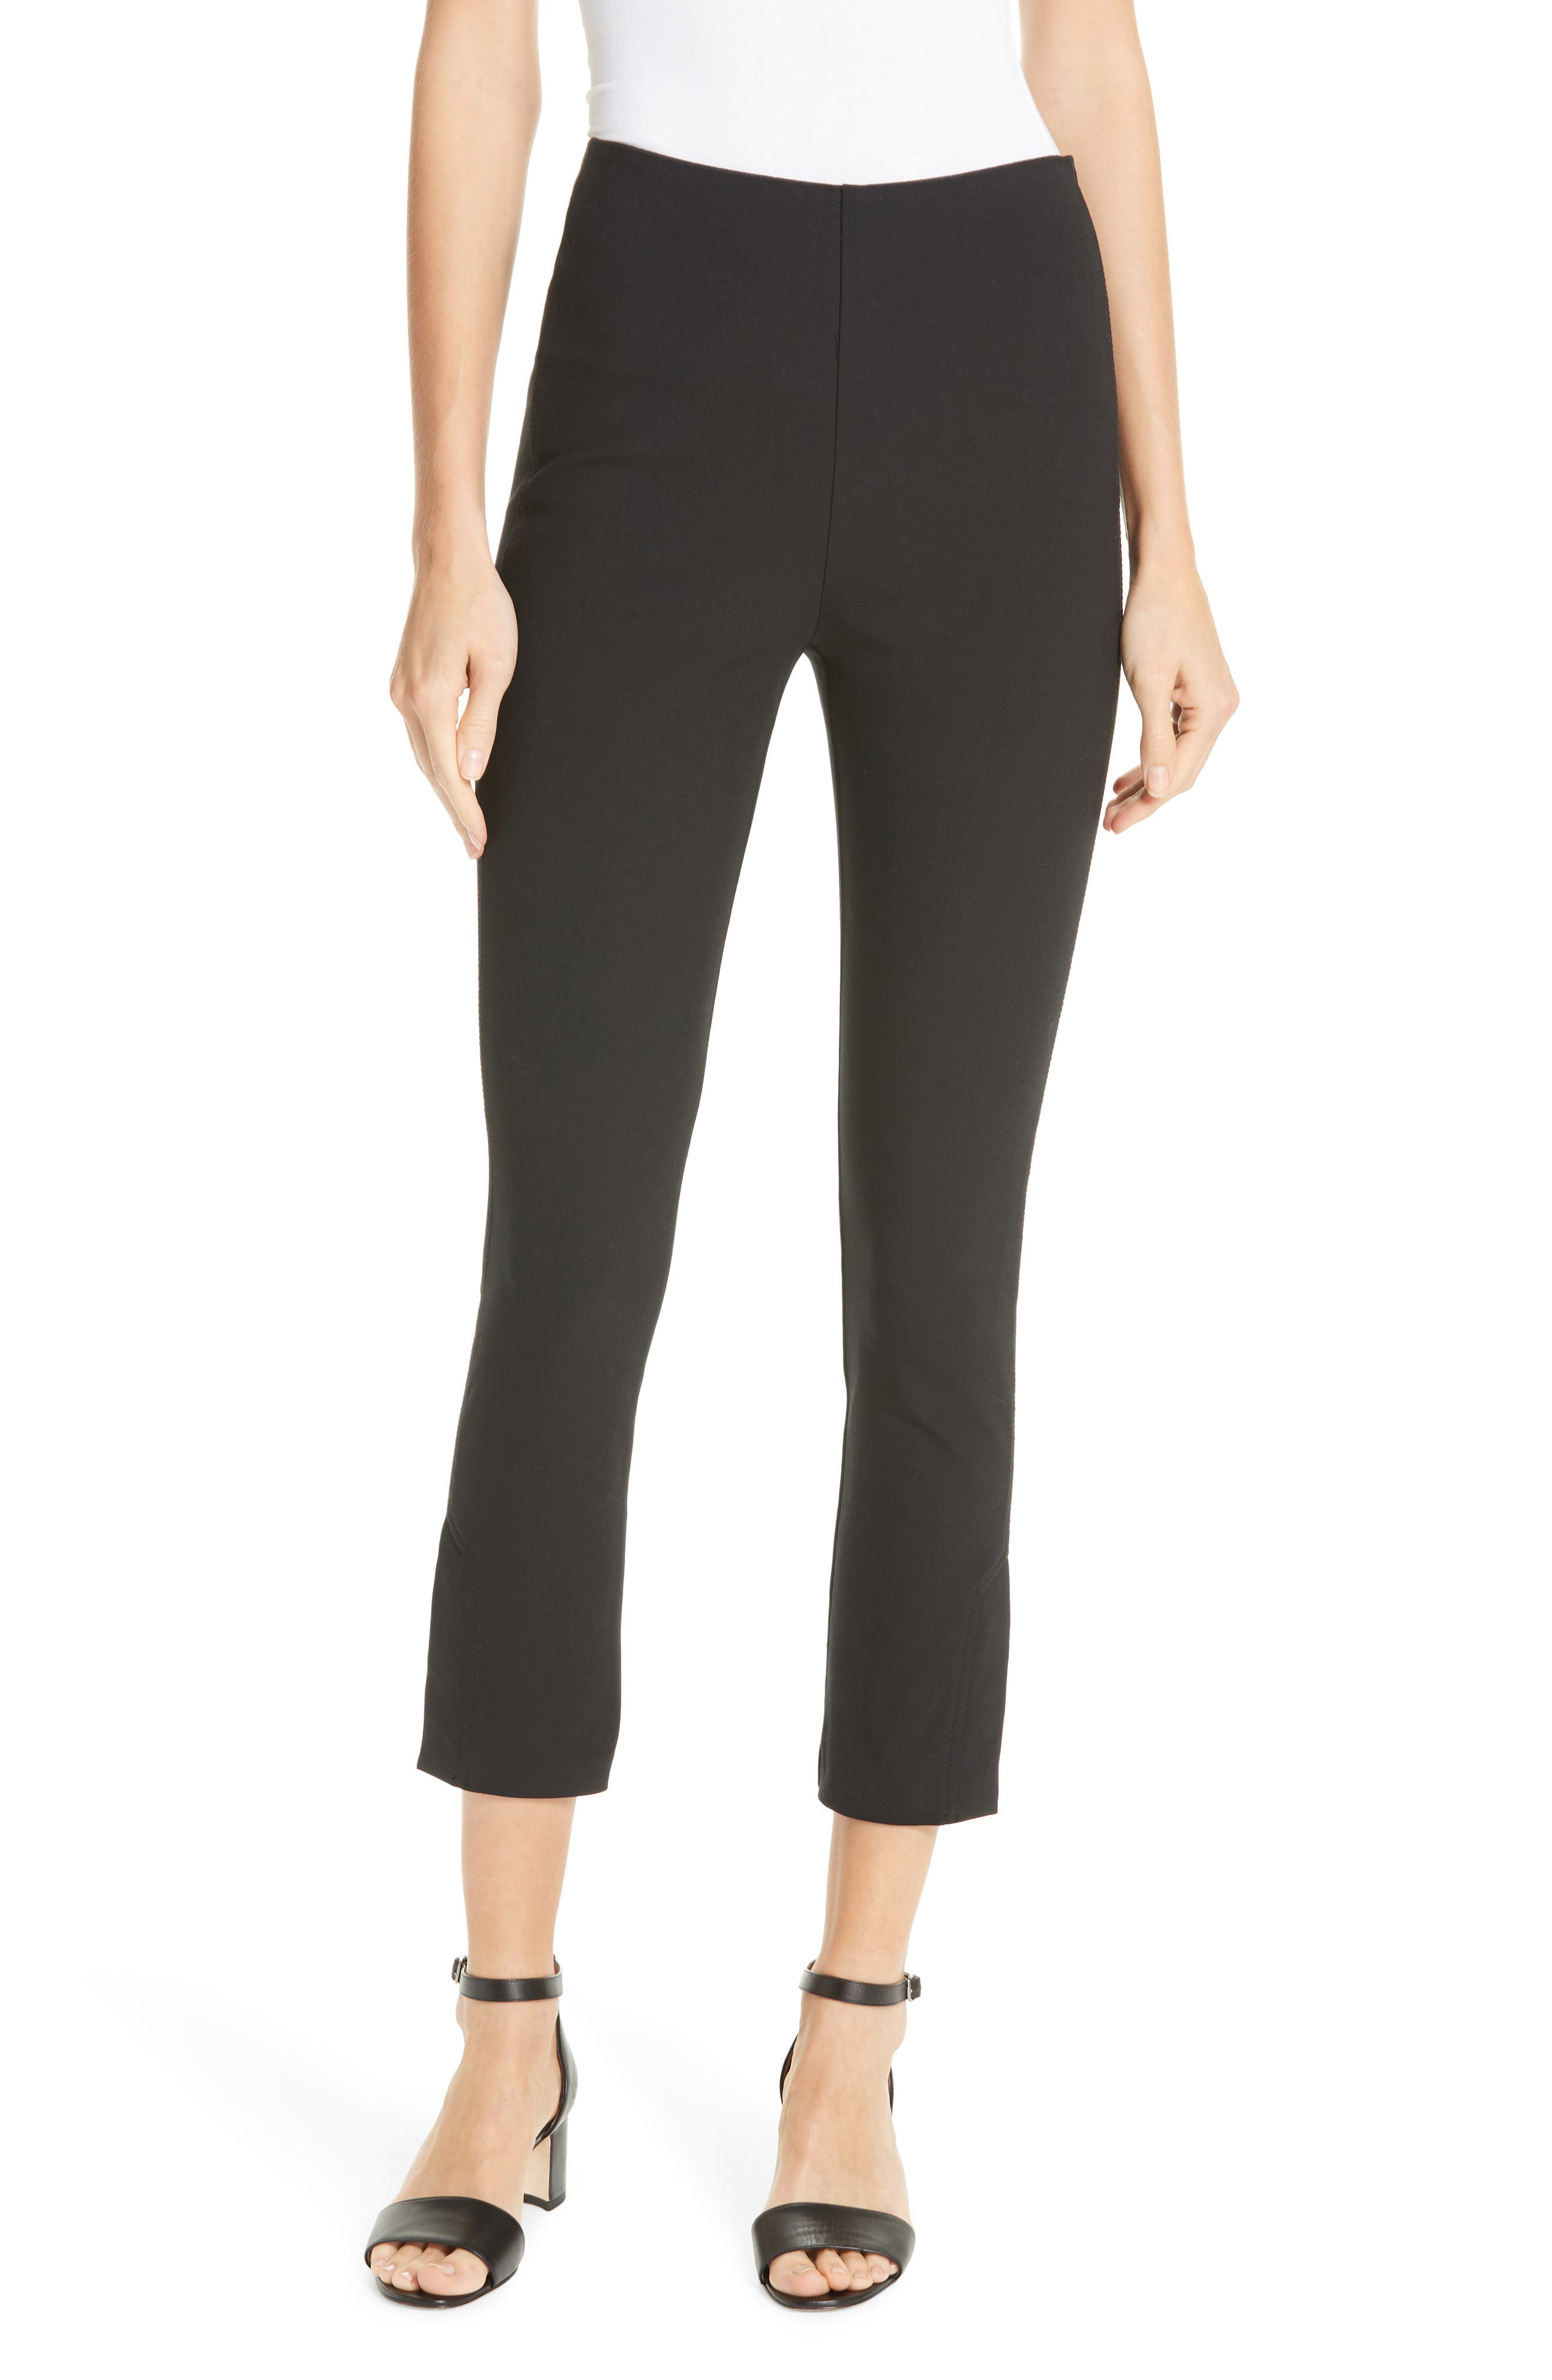 DEREK LAM 10 CROSBY,                             Sullivan Leggings,                             Main thumbnail 1, color,                             BLACK